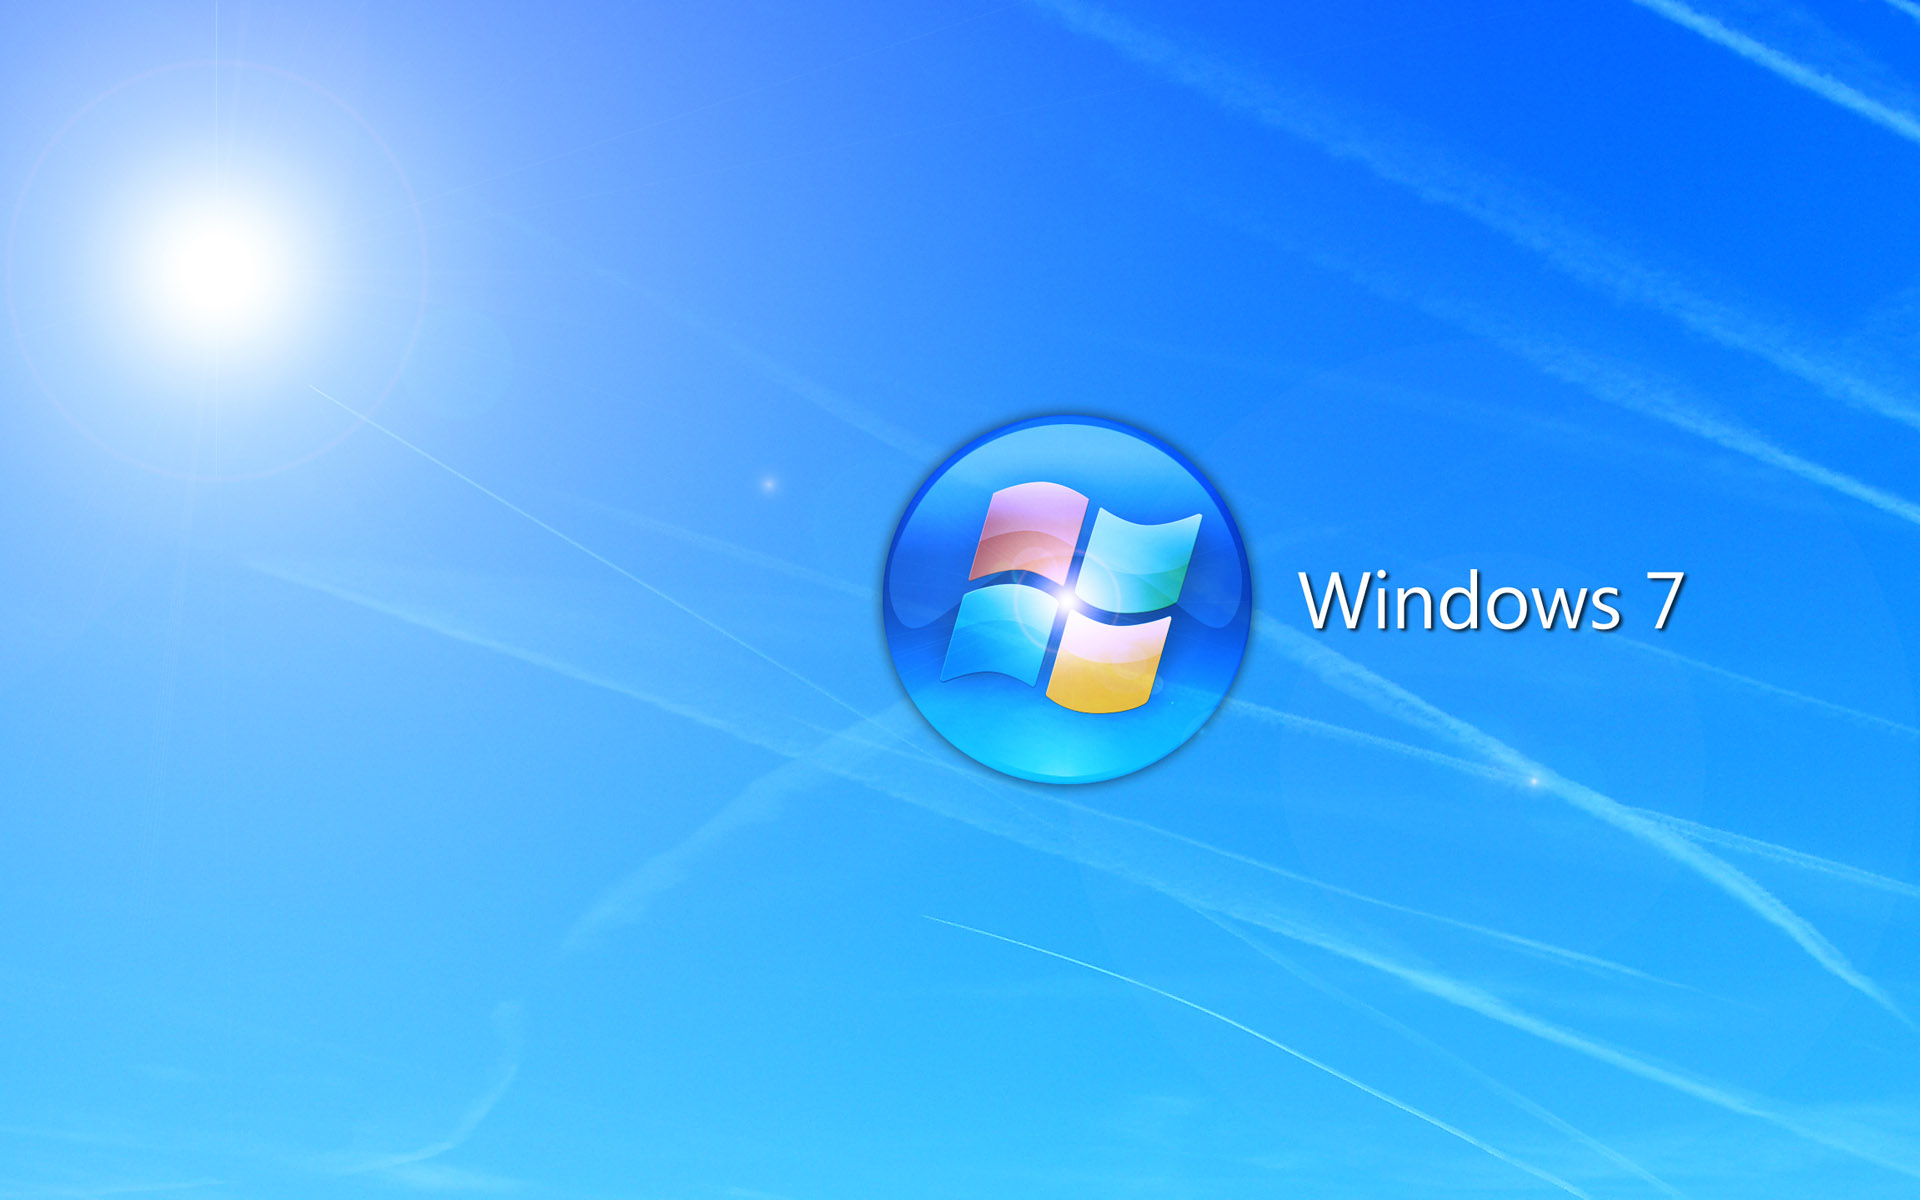 Windows 7 Hd Wallpapers 1080p - WallpaperSafari